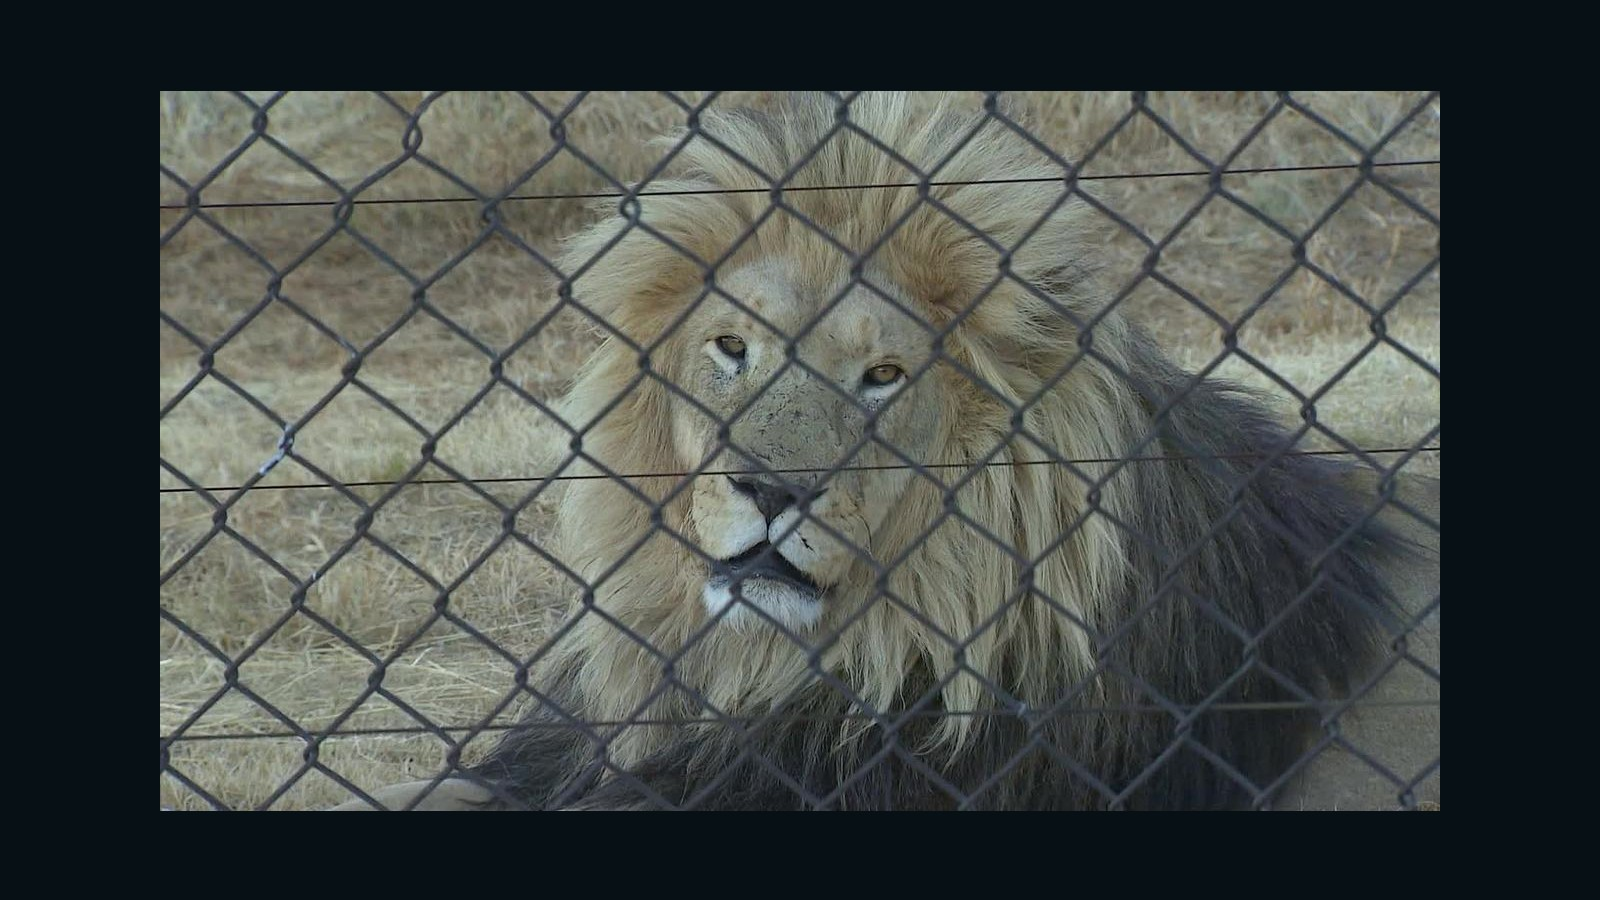 Image of: Petition Ending Trophy Hunting Could Actually Be Worse For Endangered Species Cnn Cnncom Ending Trophy Hunting Could Actually Be Worse For Endangered Species